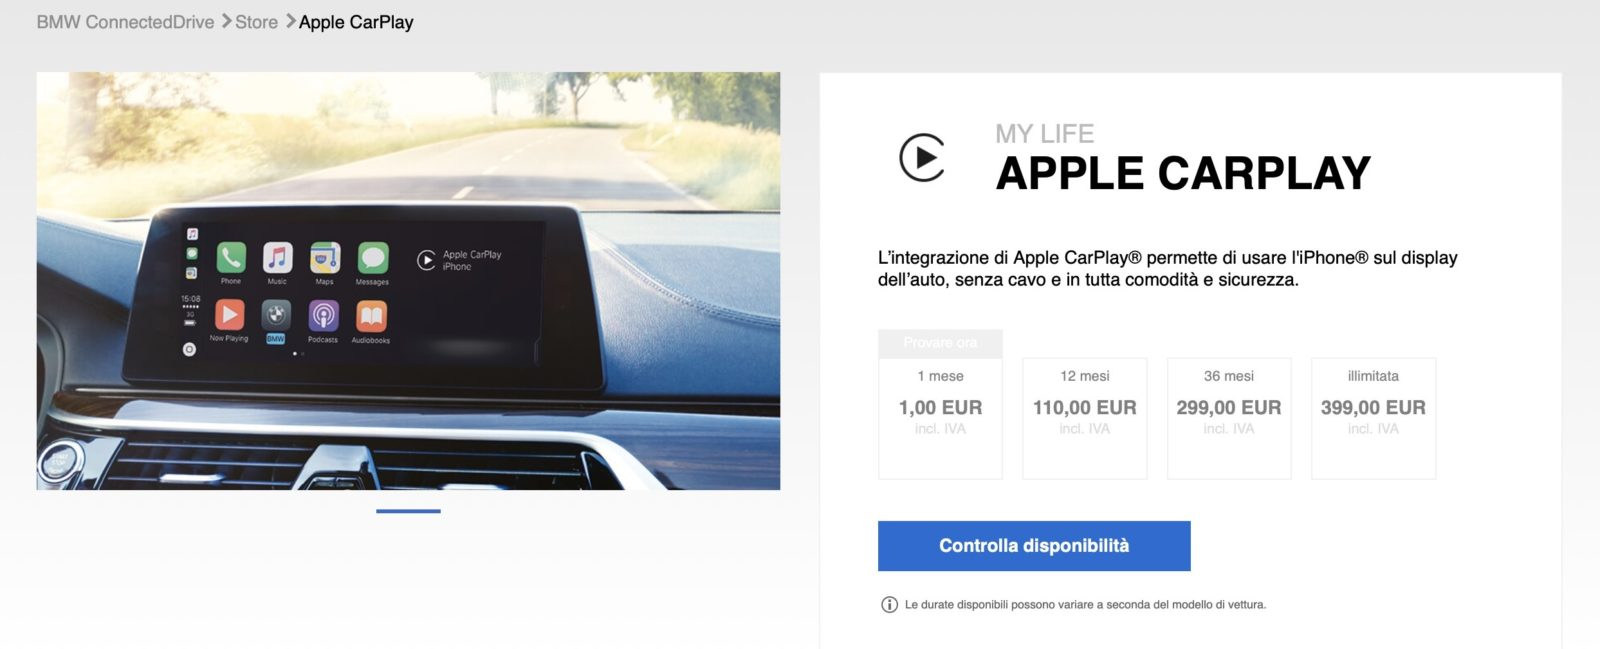 I problemi su CarPlay in abbonamento di BMW impediscono l'uso di iPhone